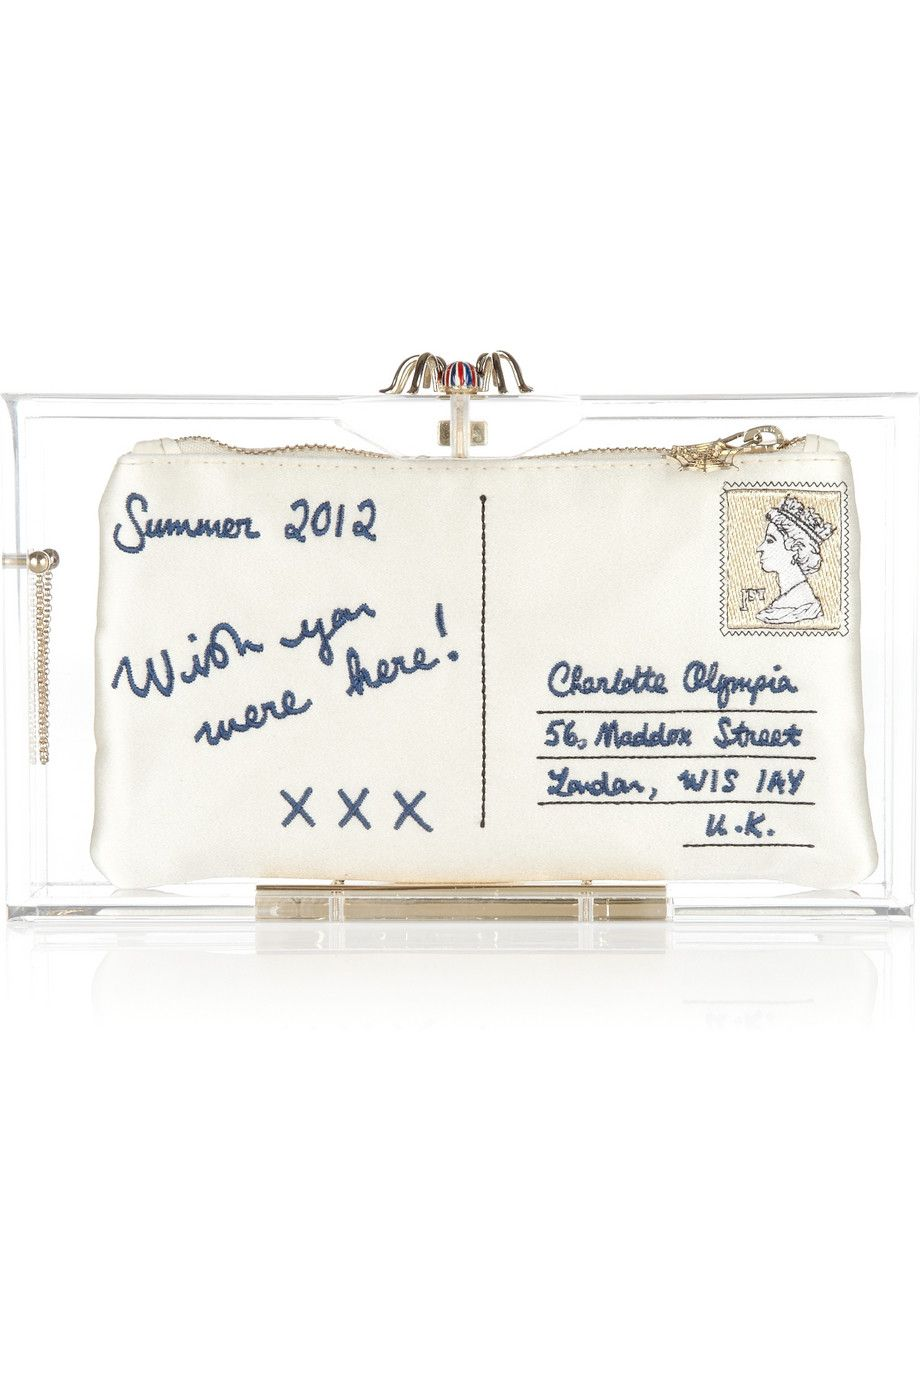 Charlotte Olympia - London 2012 Pandora Perspex clutch